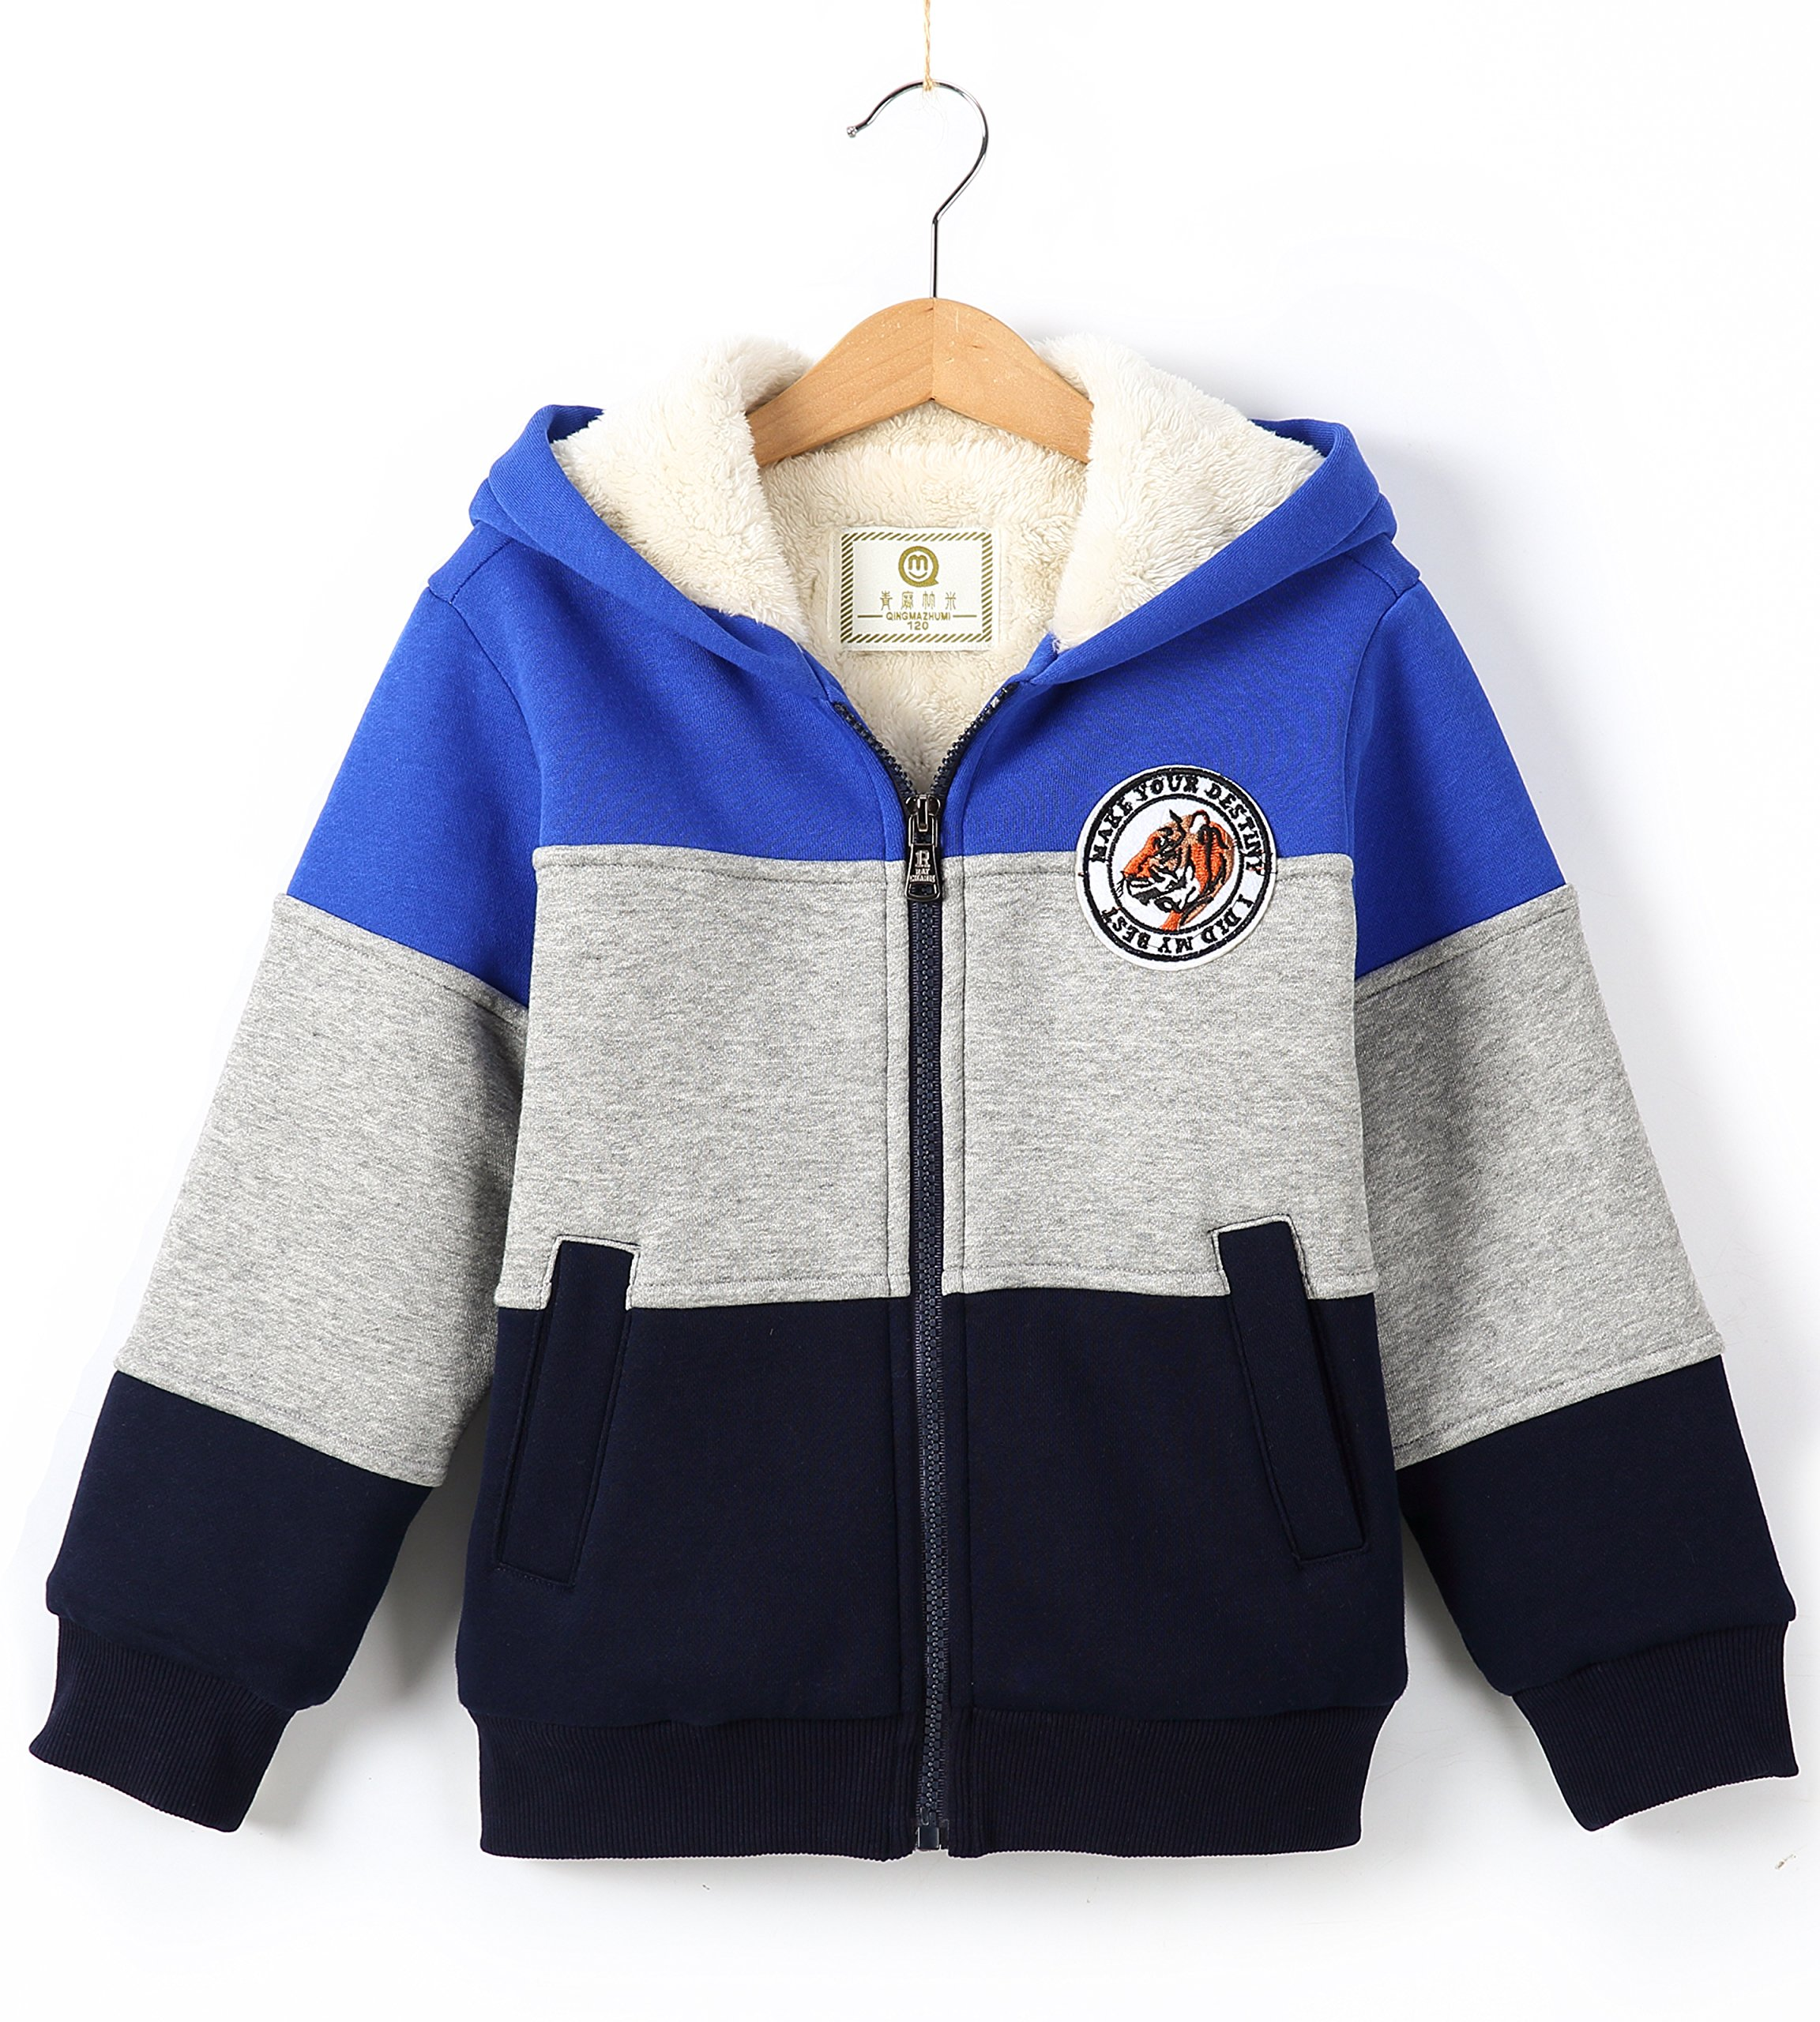 Big Boy Sherpa Fleece Lined Jacket Warm Sweatshirt Hoodie Size 9-10years (150), Blue